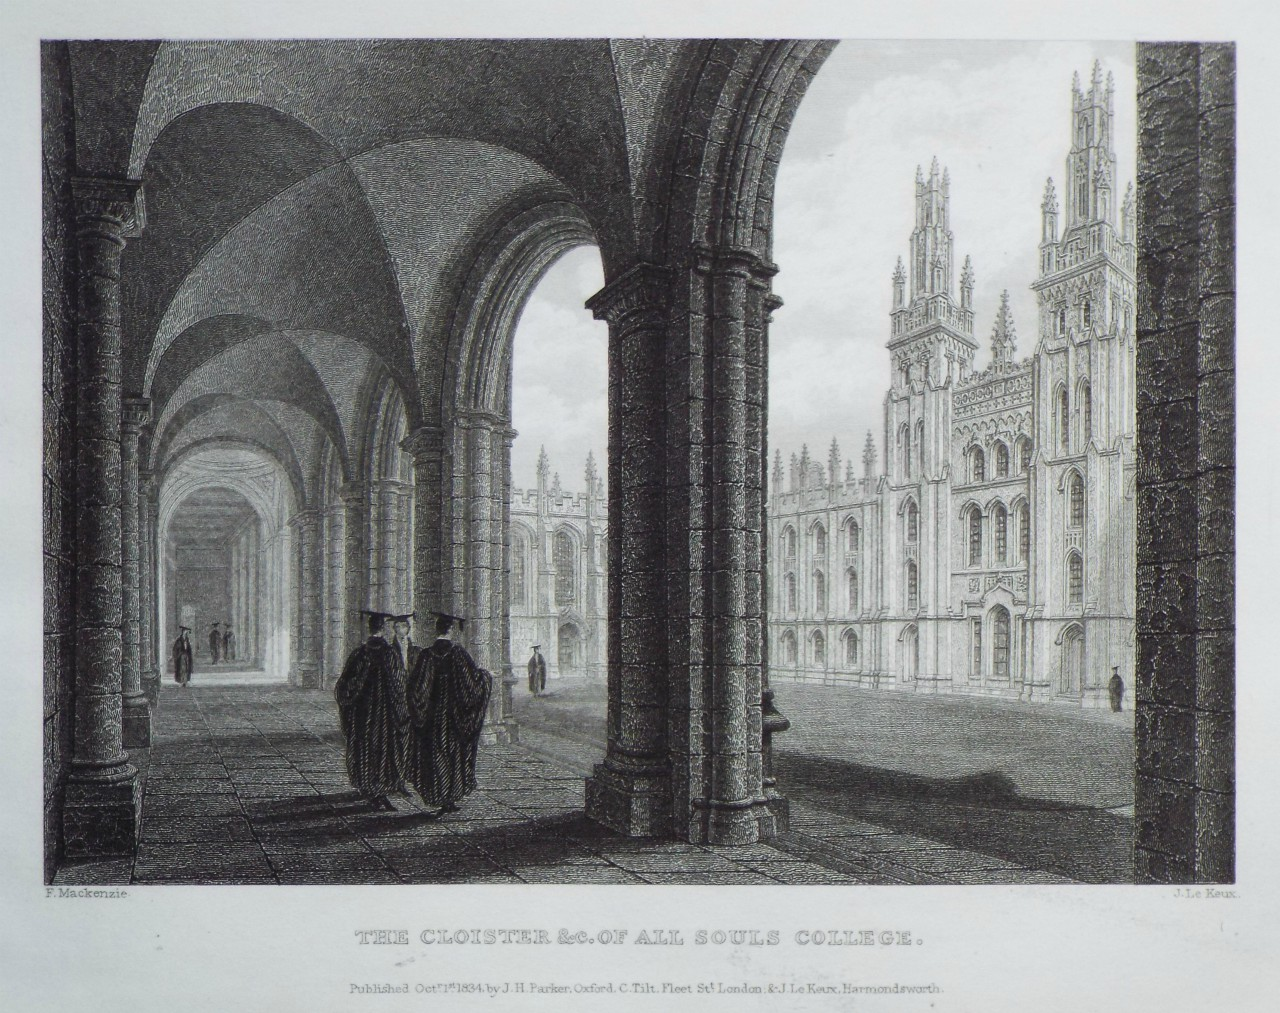 Print - The Cloister &c. of All Souls College. - Le